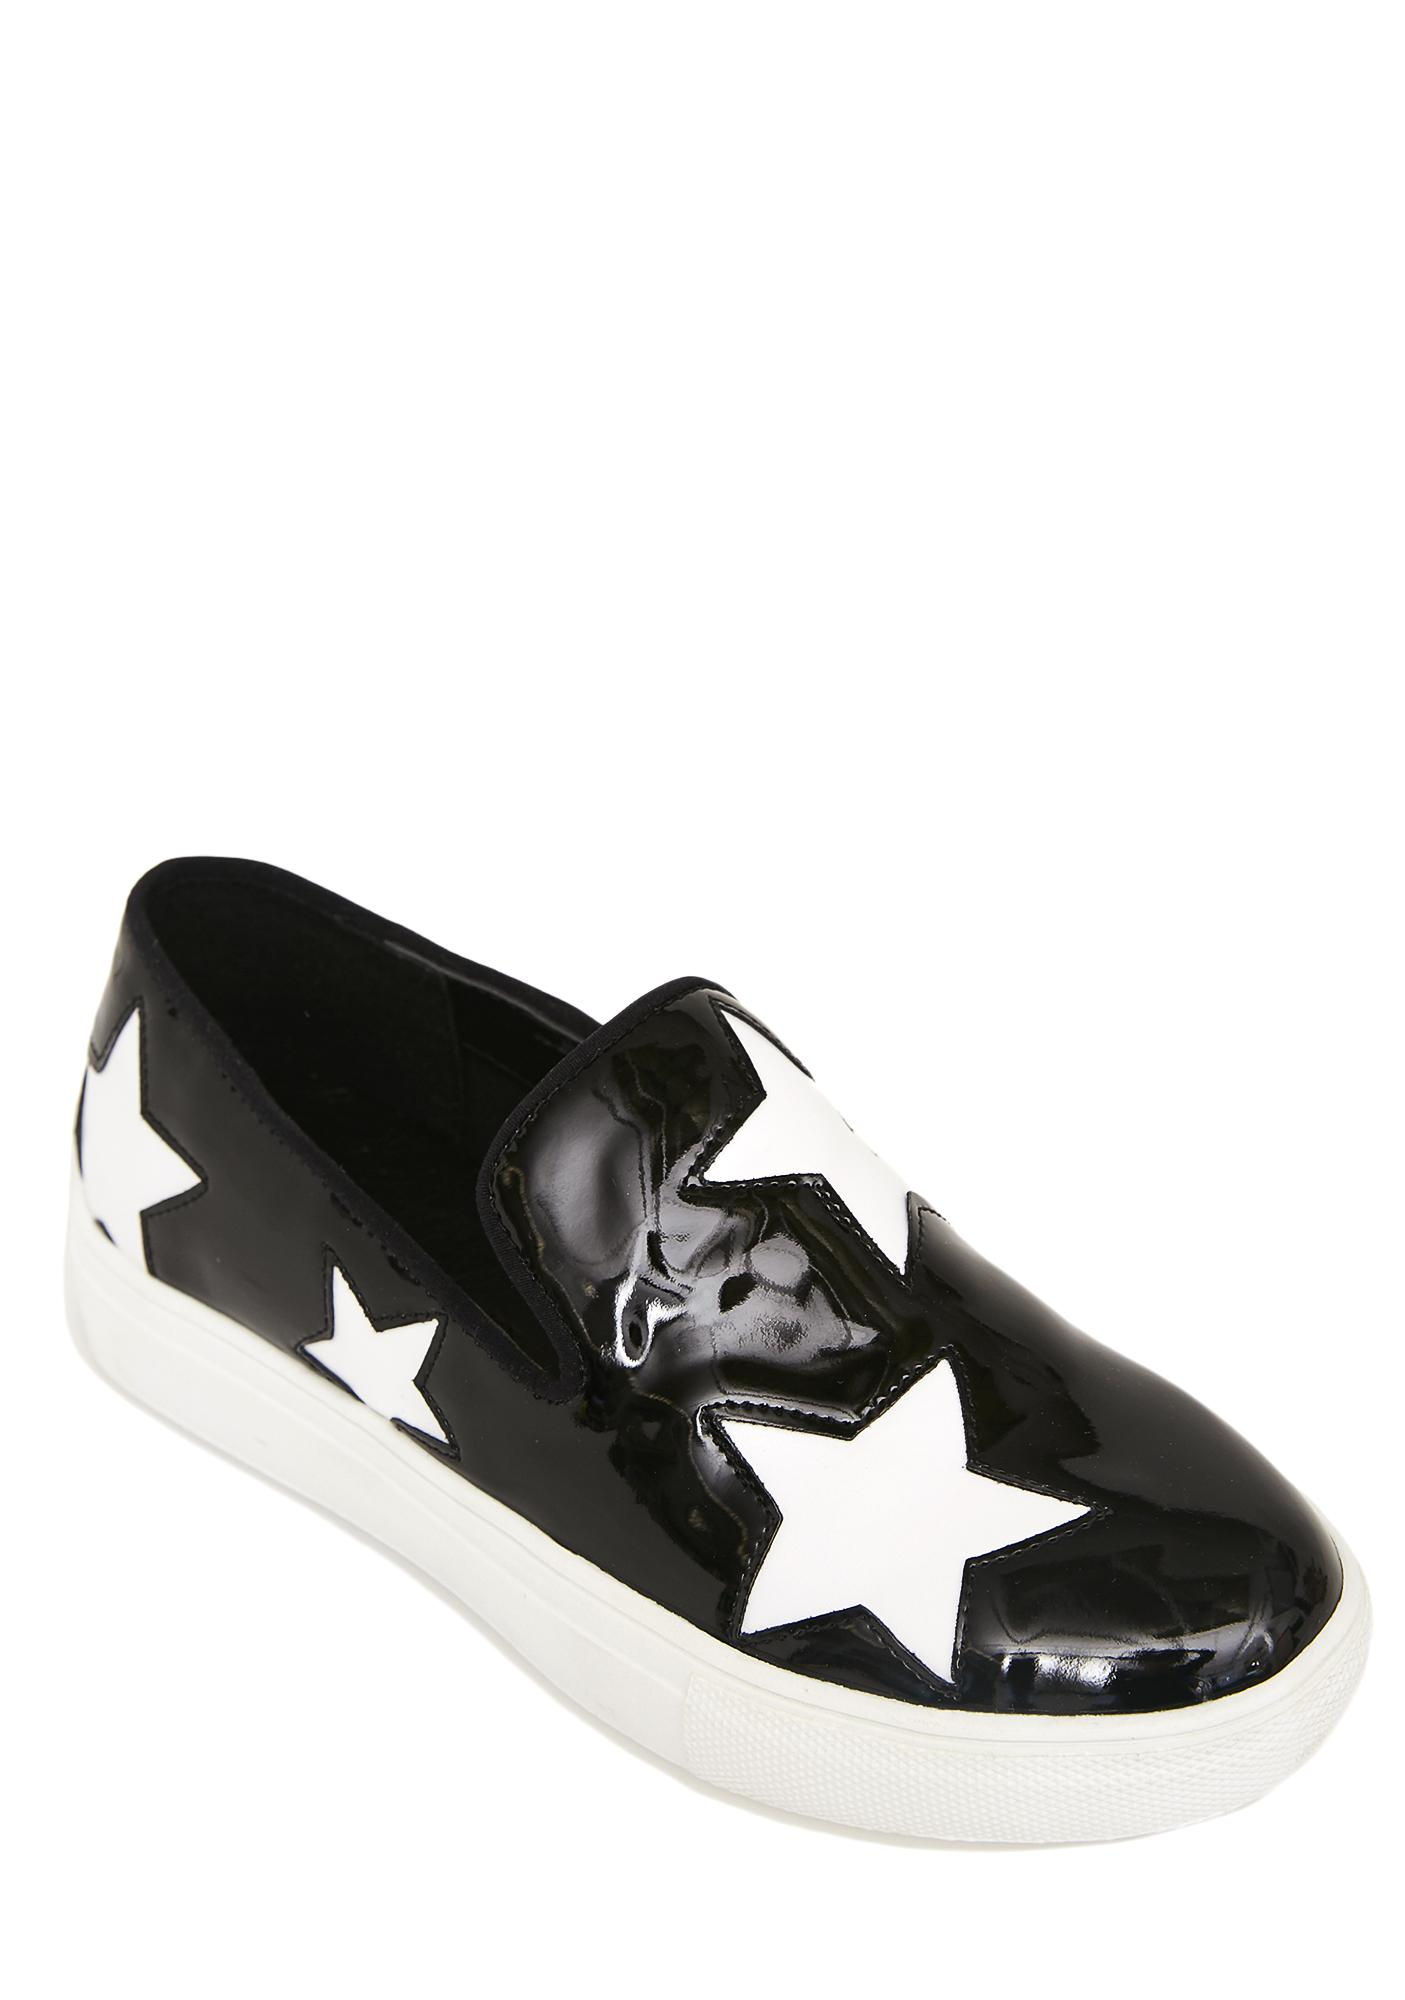 Cala Star Slip-On Sneakers